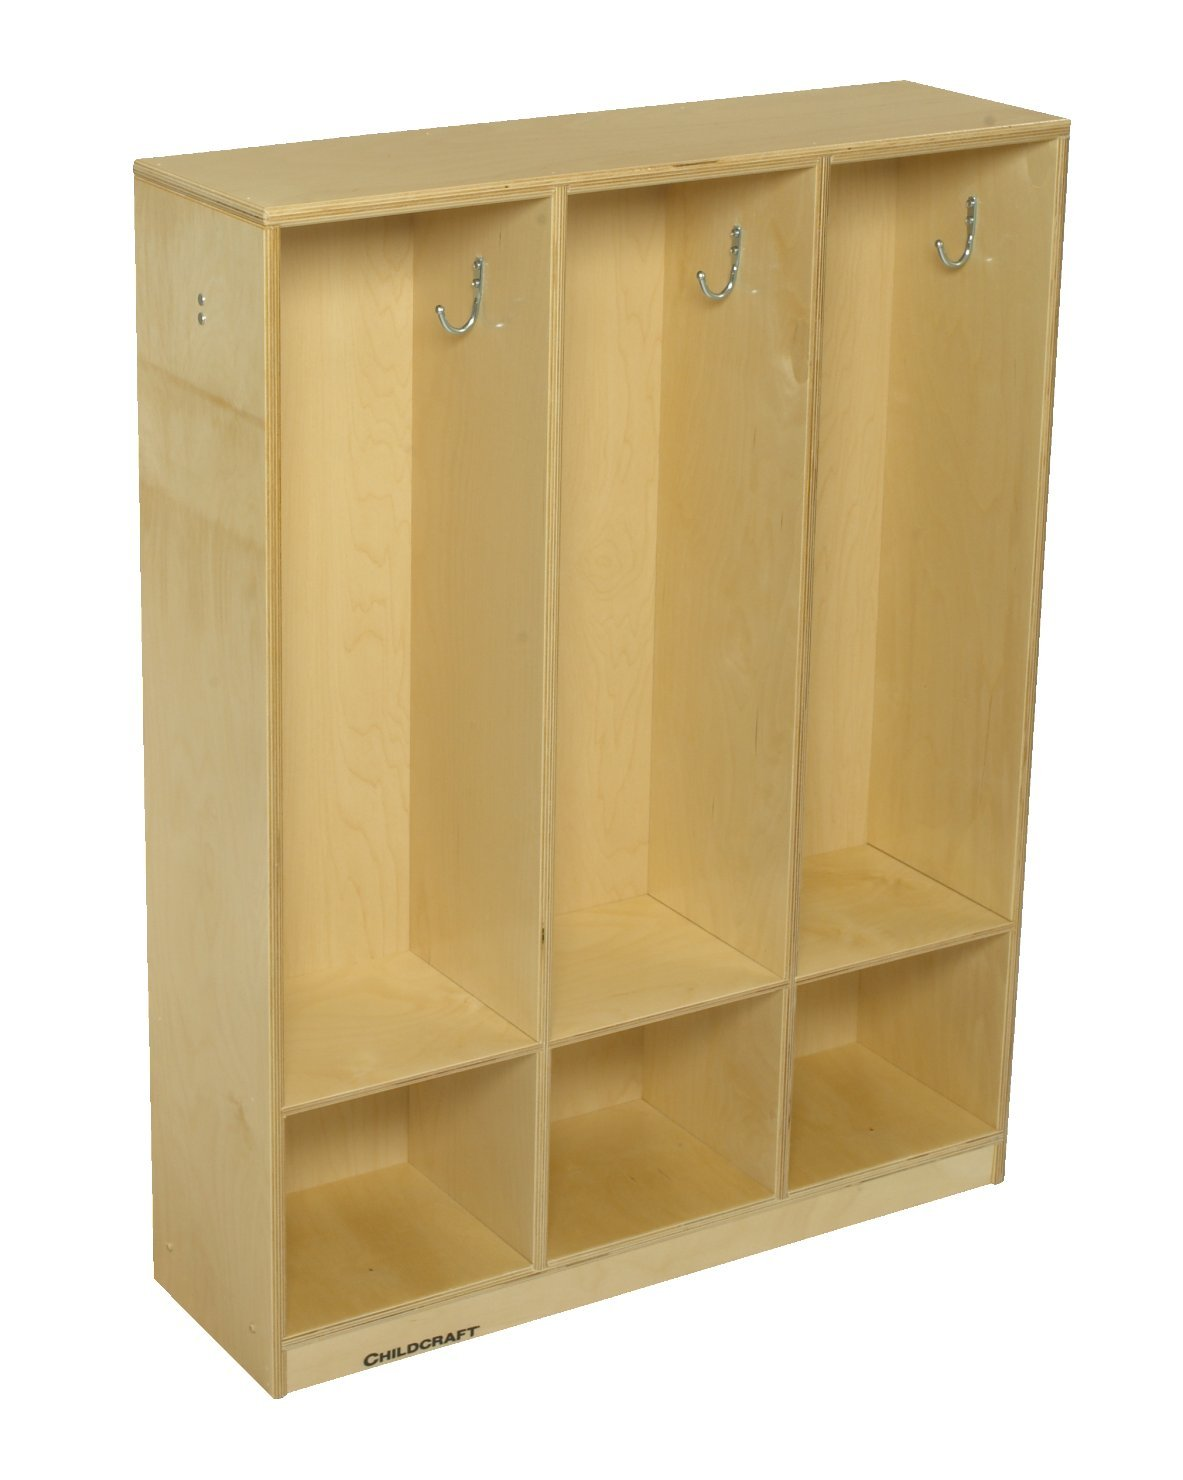 Childcraft Coat Locker, 3 Sections, 32-1/2 x 9-5/8 x 42 Inches